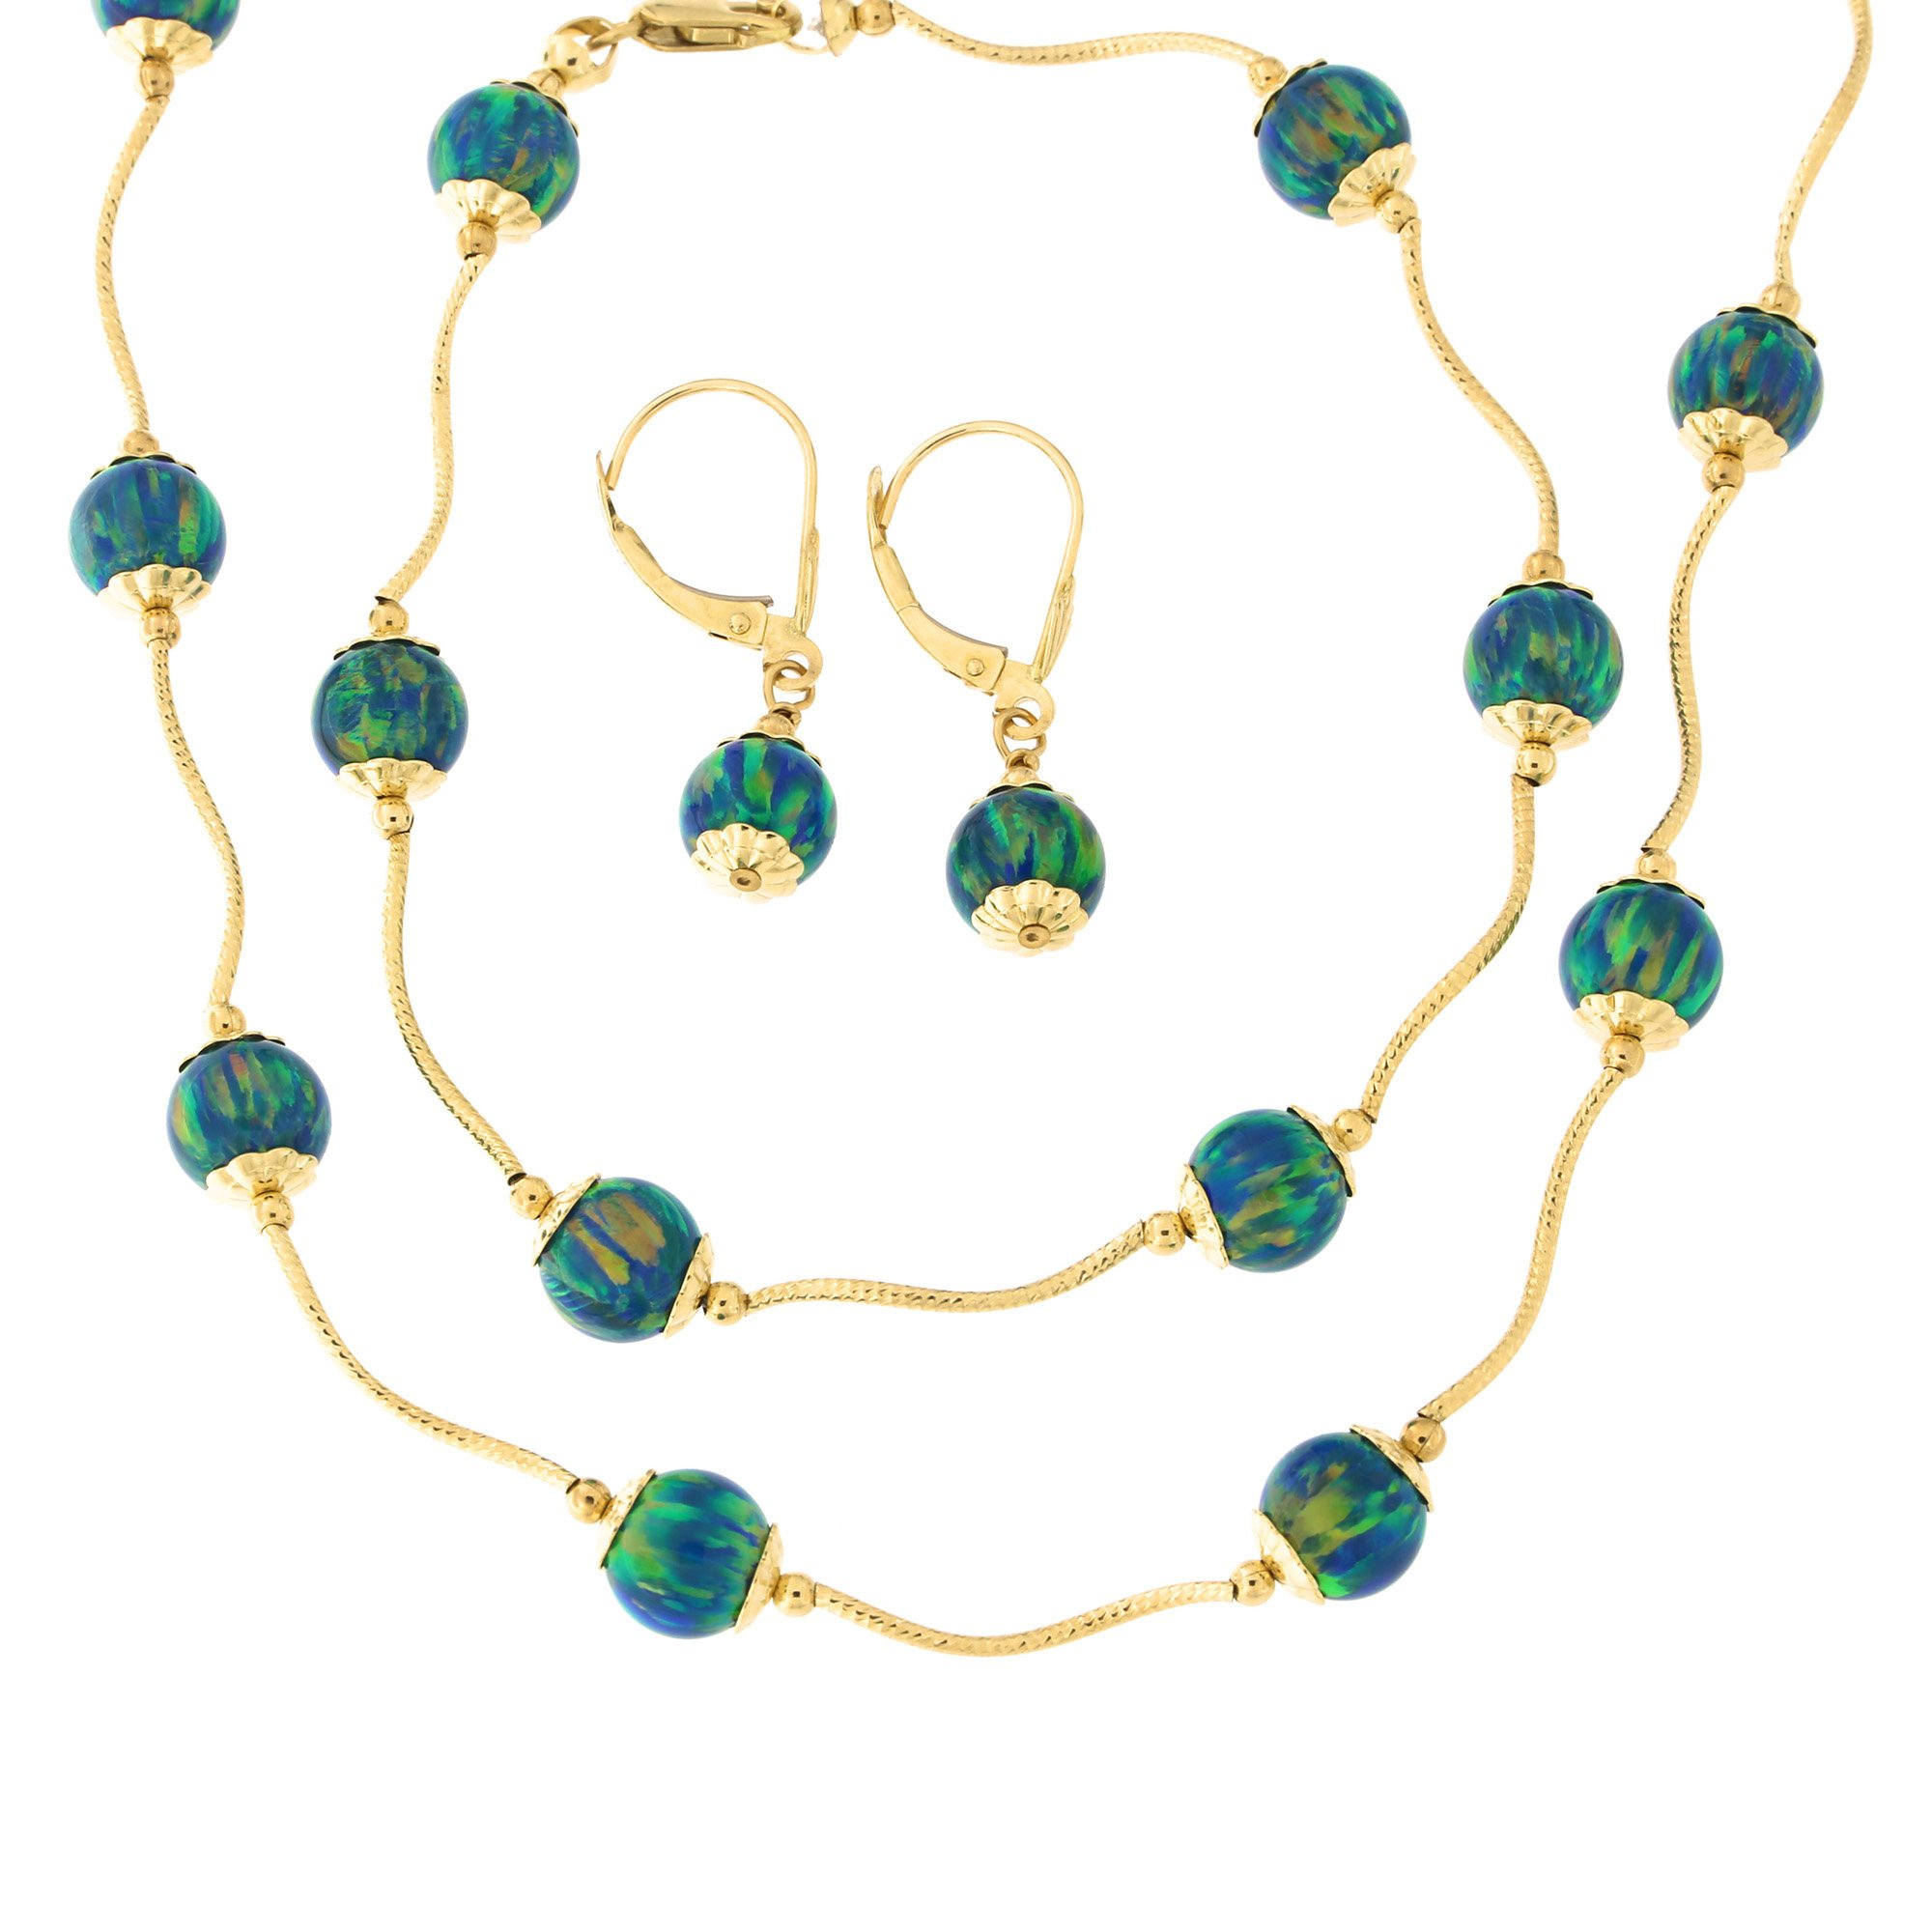 14k Yellow Gold Diamond Cut Capped Simulated Green Opal Station Necklace, Earrings and Bracelet Set by